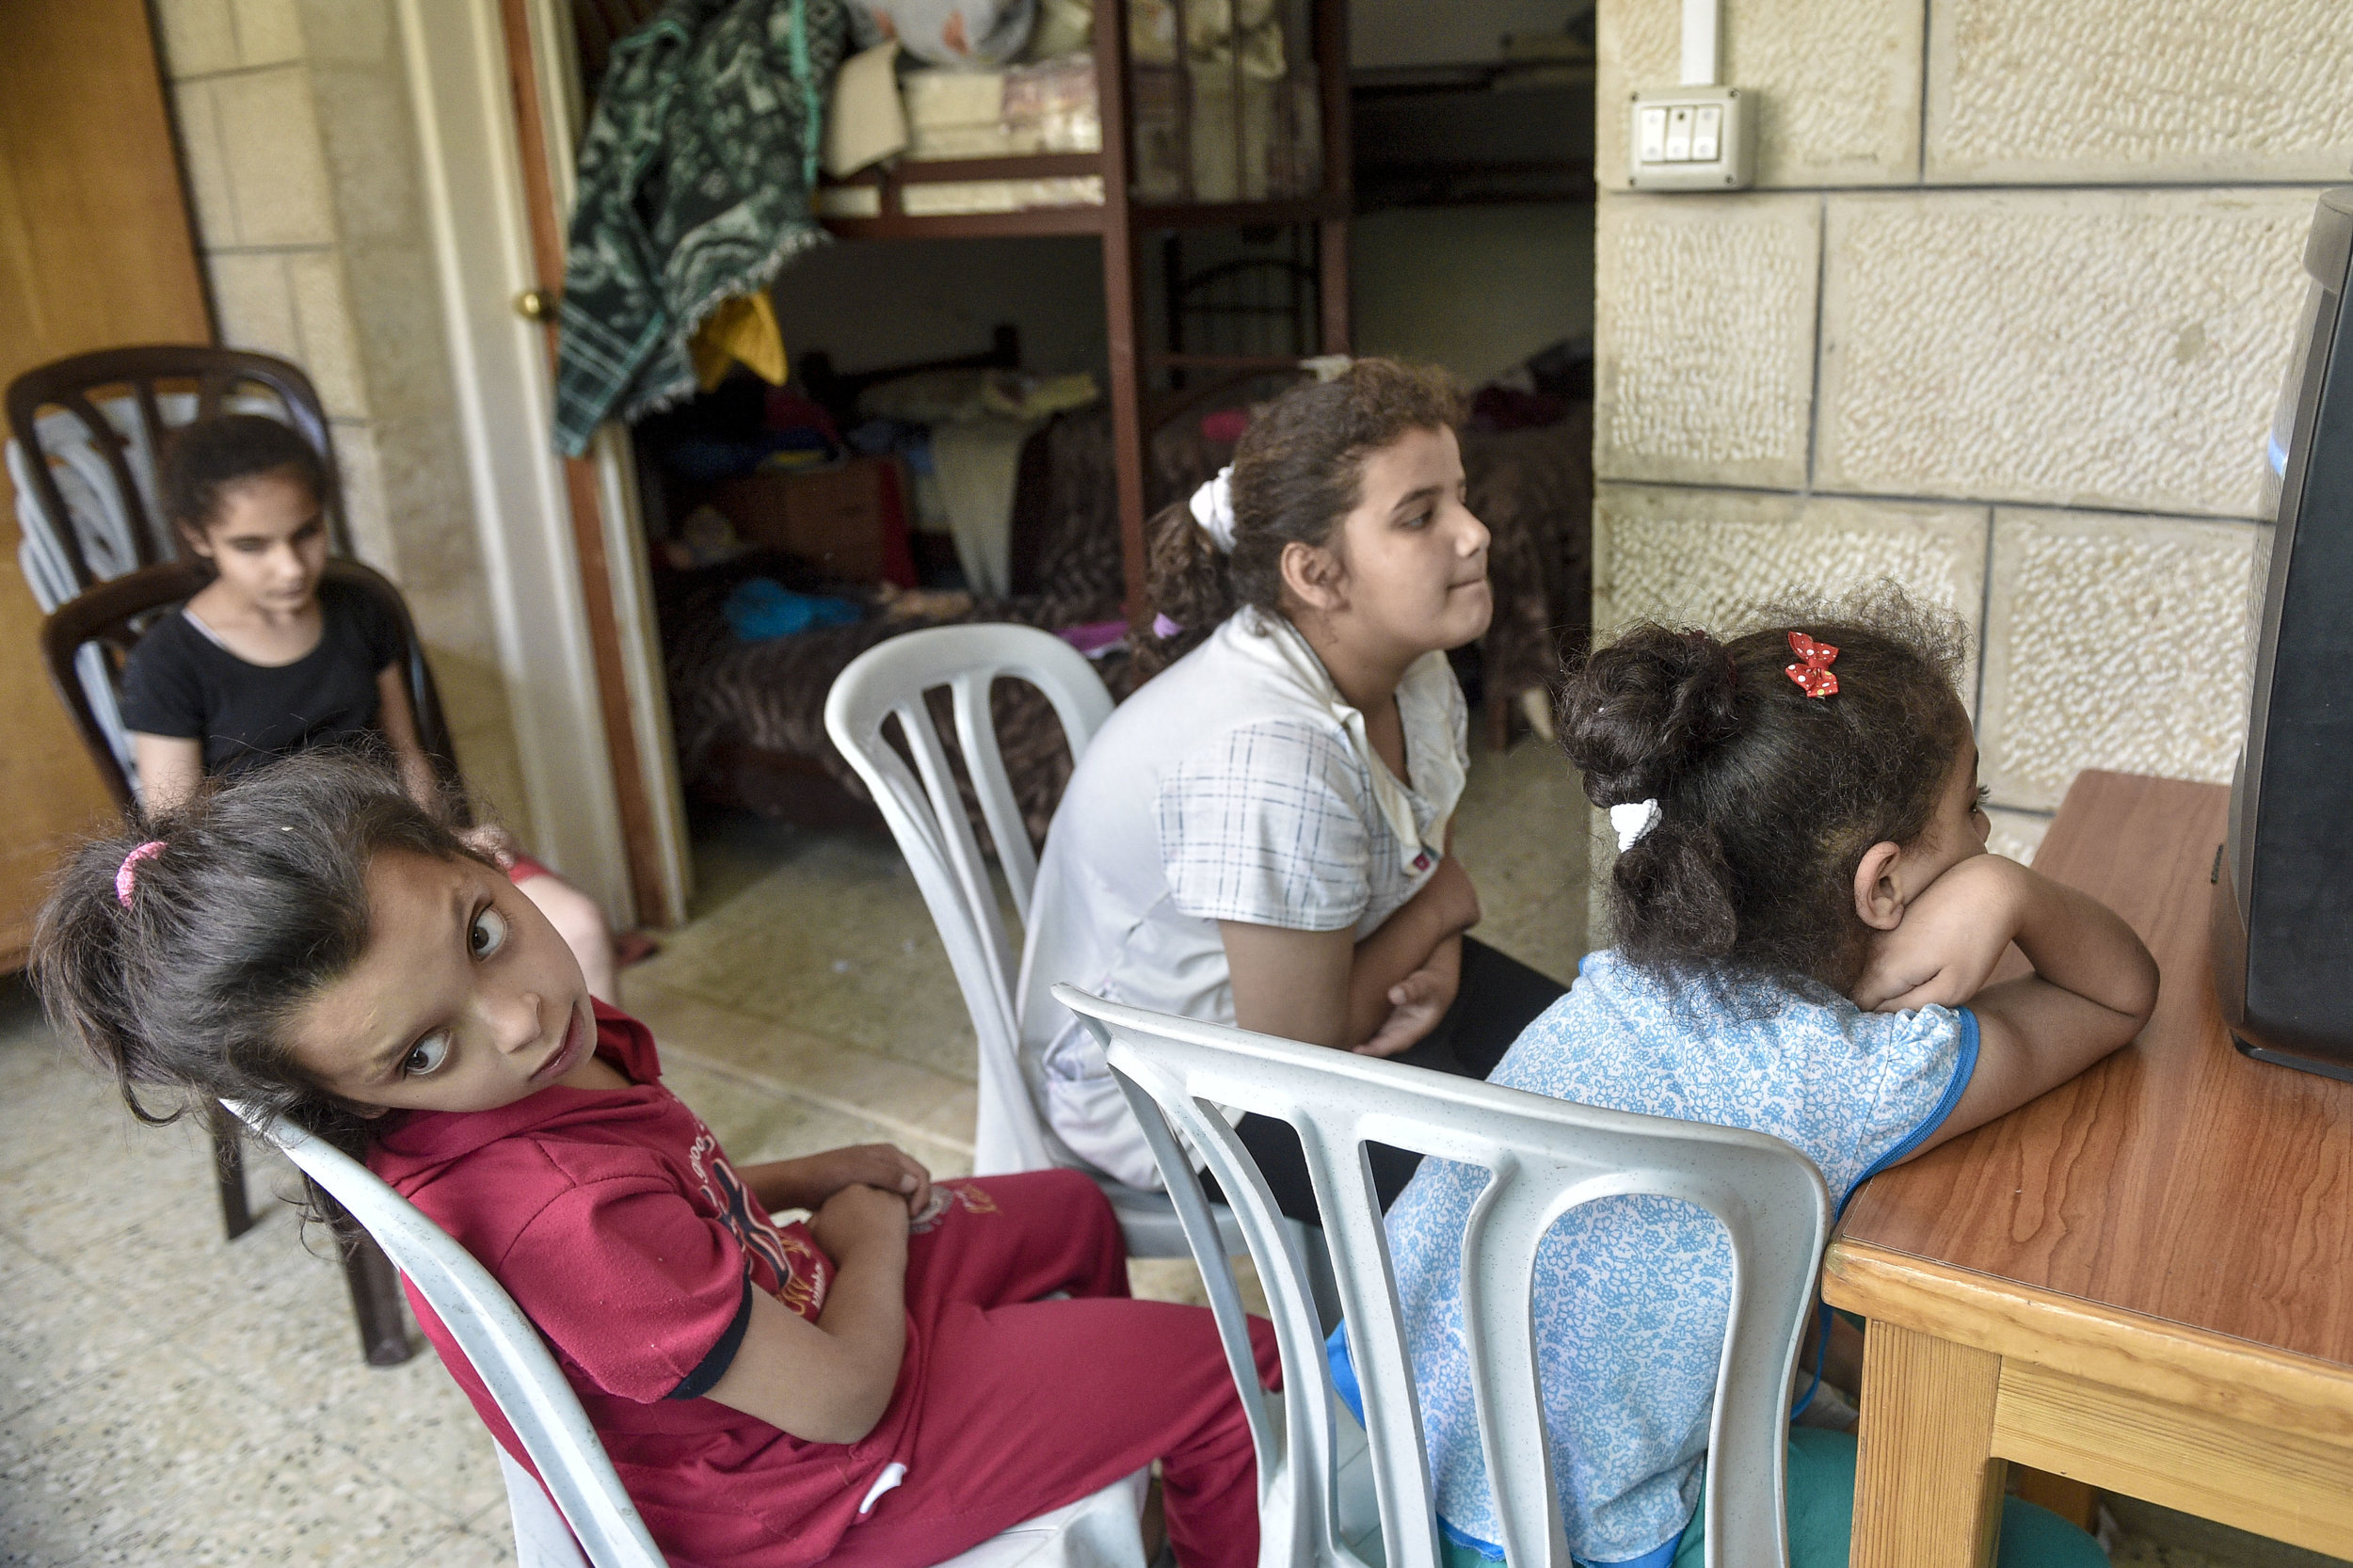 The students of the Peace Center for the Blind listen to music on the television in the boarding house located in East Jerusalem shortly before they leave to go home for the summer. A school from Beit Hanina was supposed to stop by in the morning to meet the girls however never showed up.